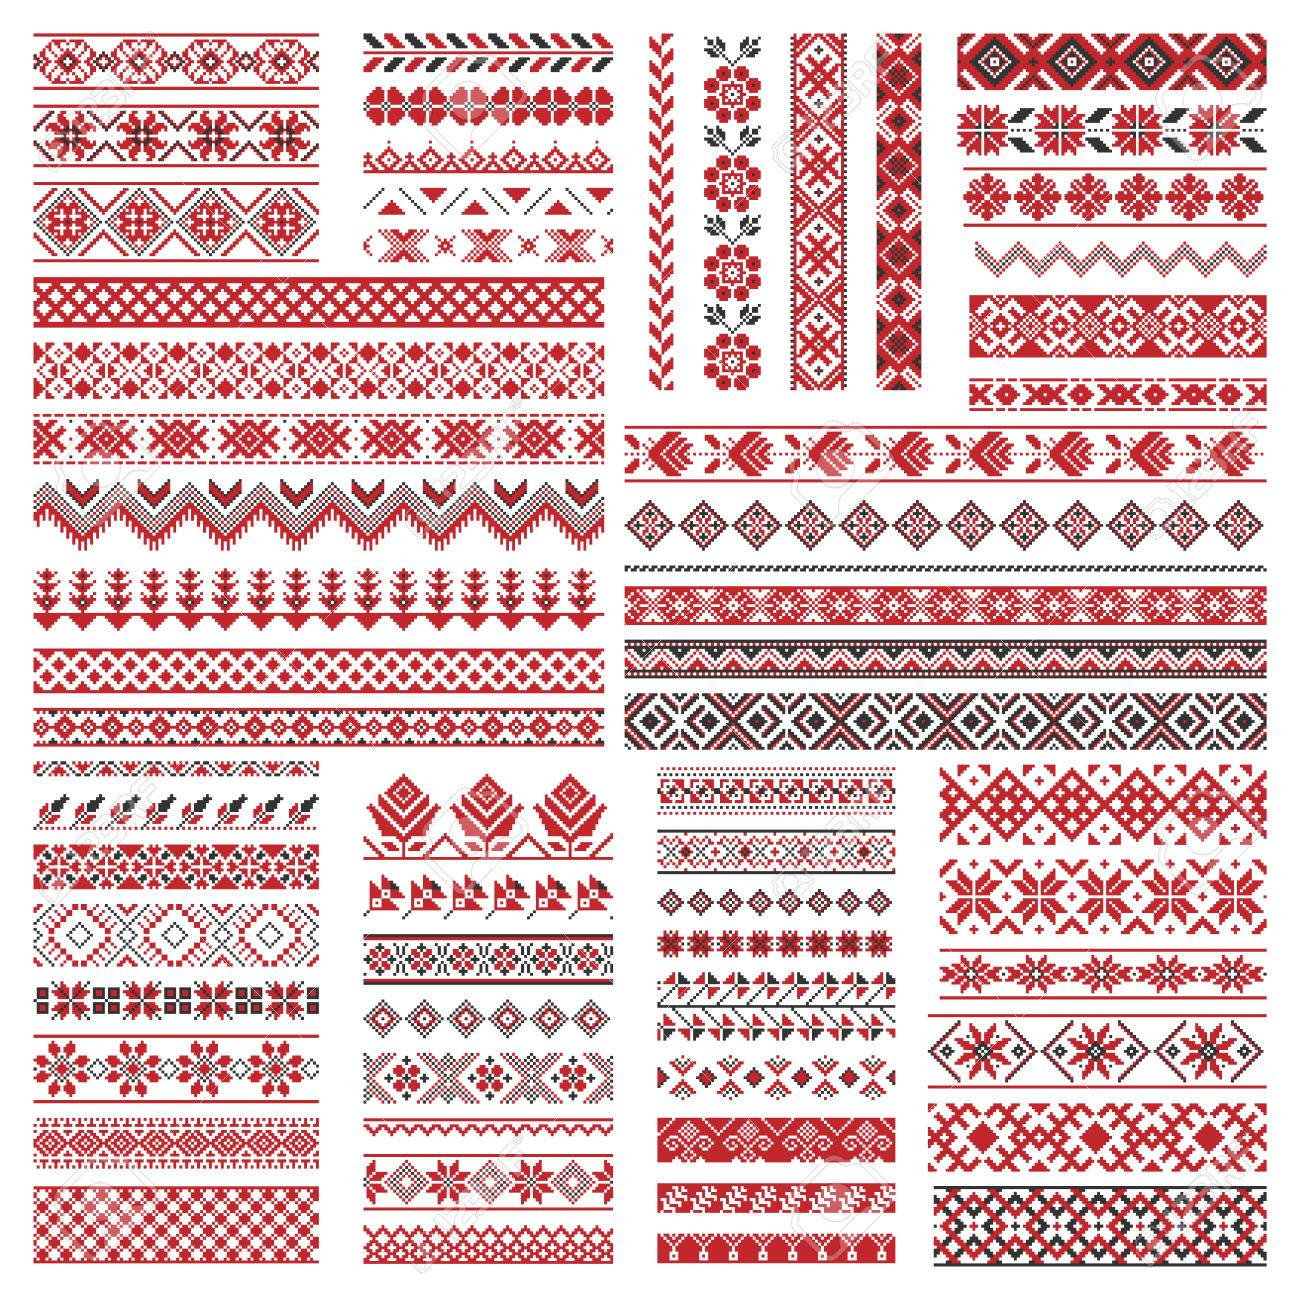 Big set of traditional embroidery. Vector illustration of ethnic seamless ornamental geometric patterns for your design - 59802772